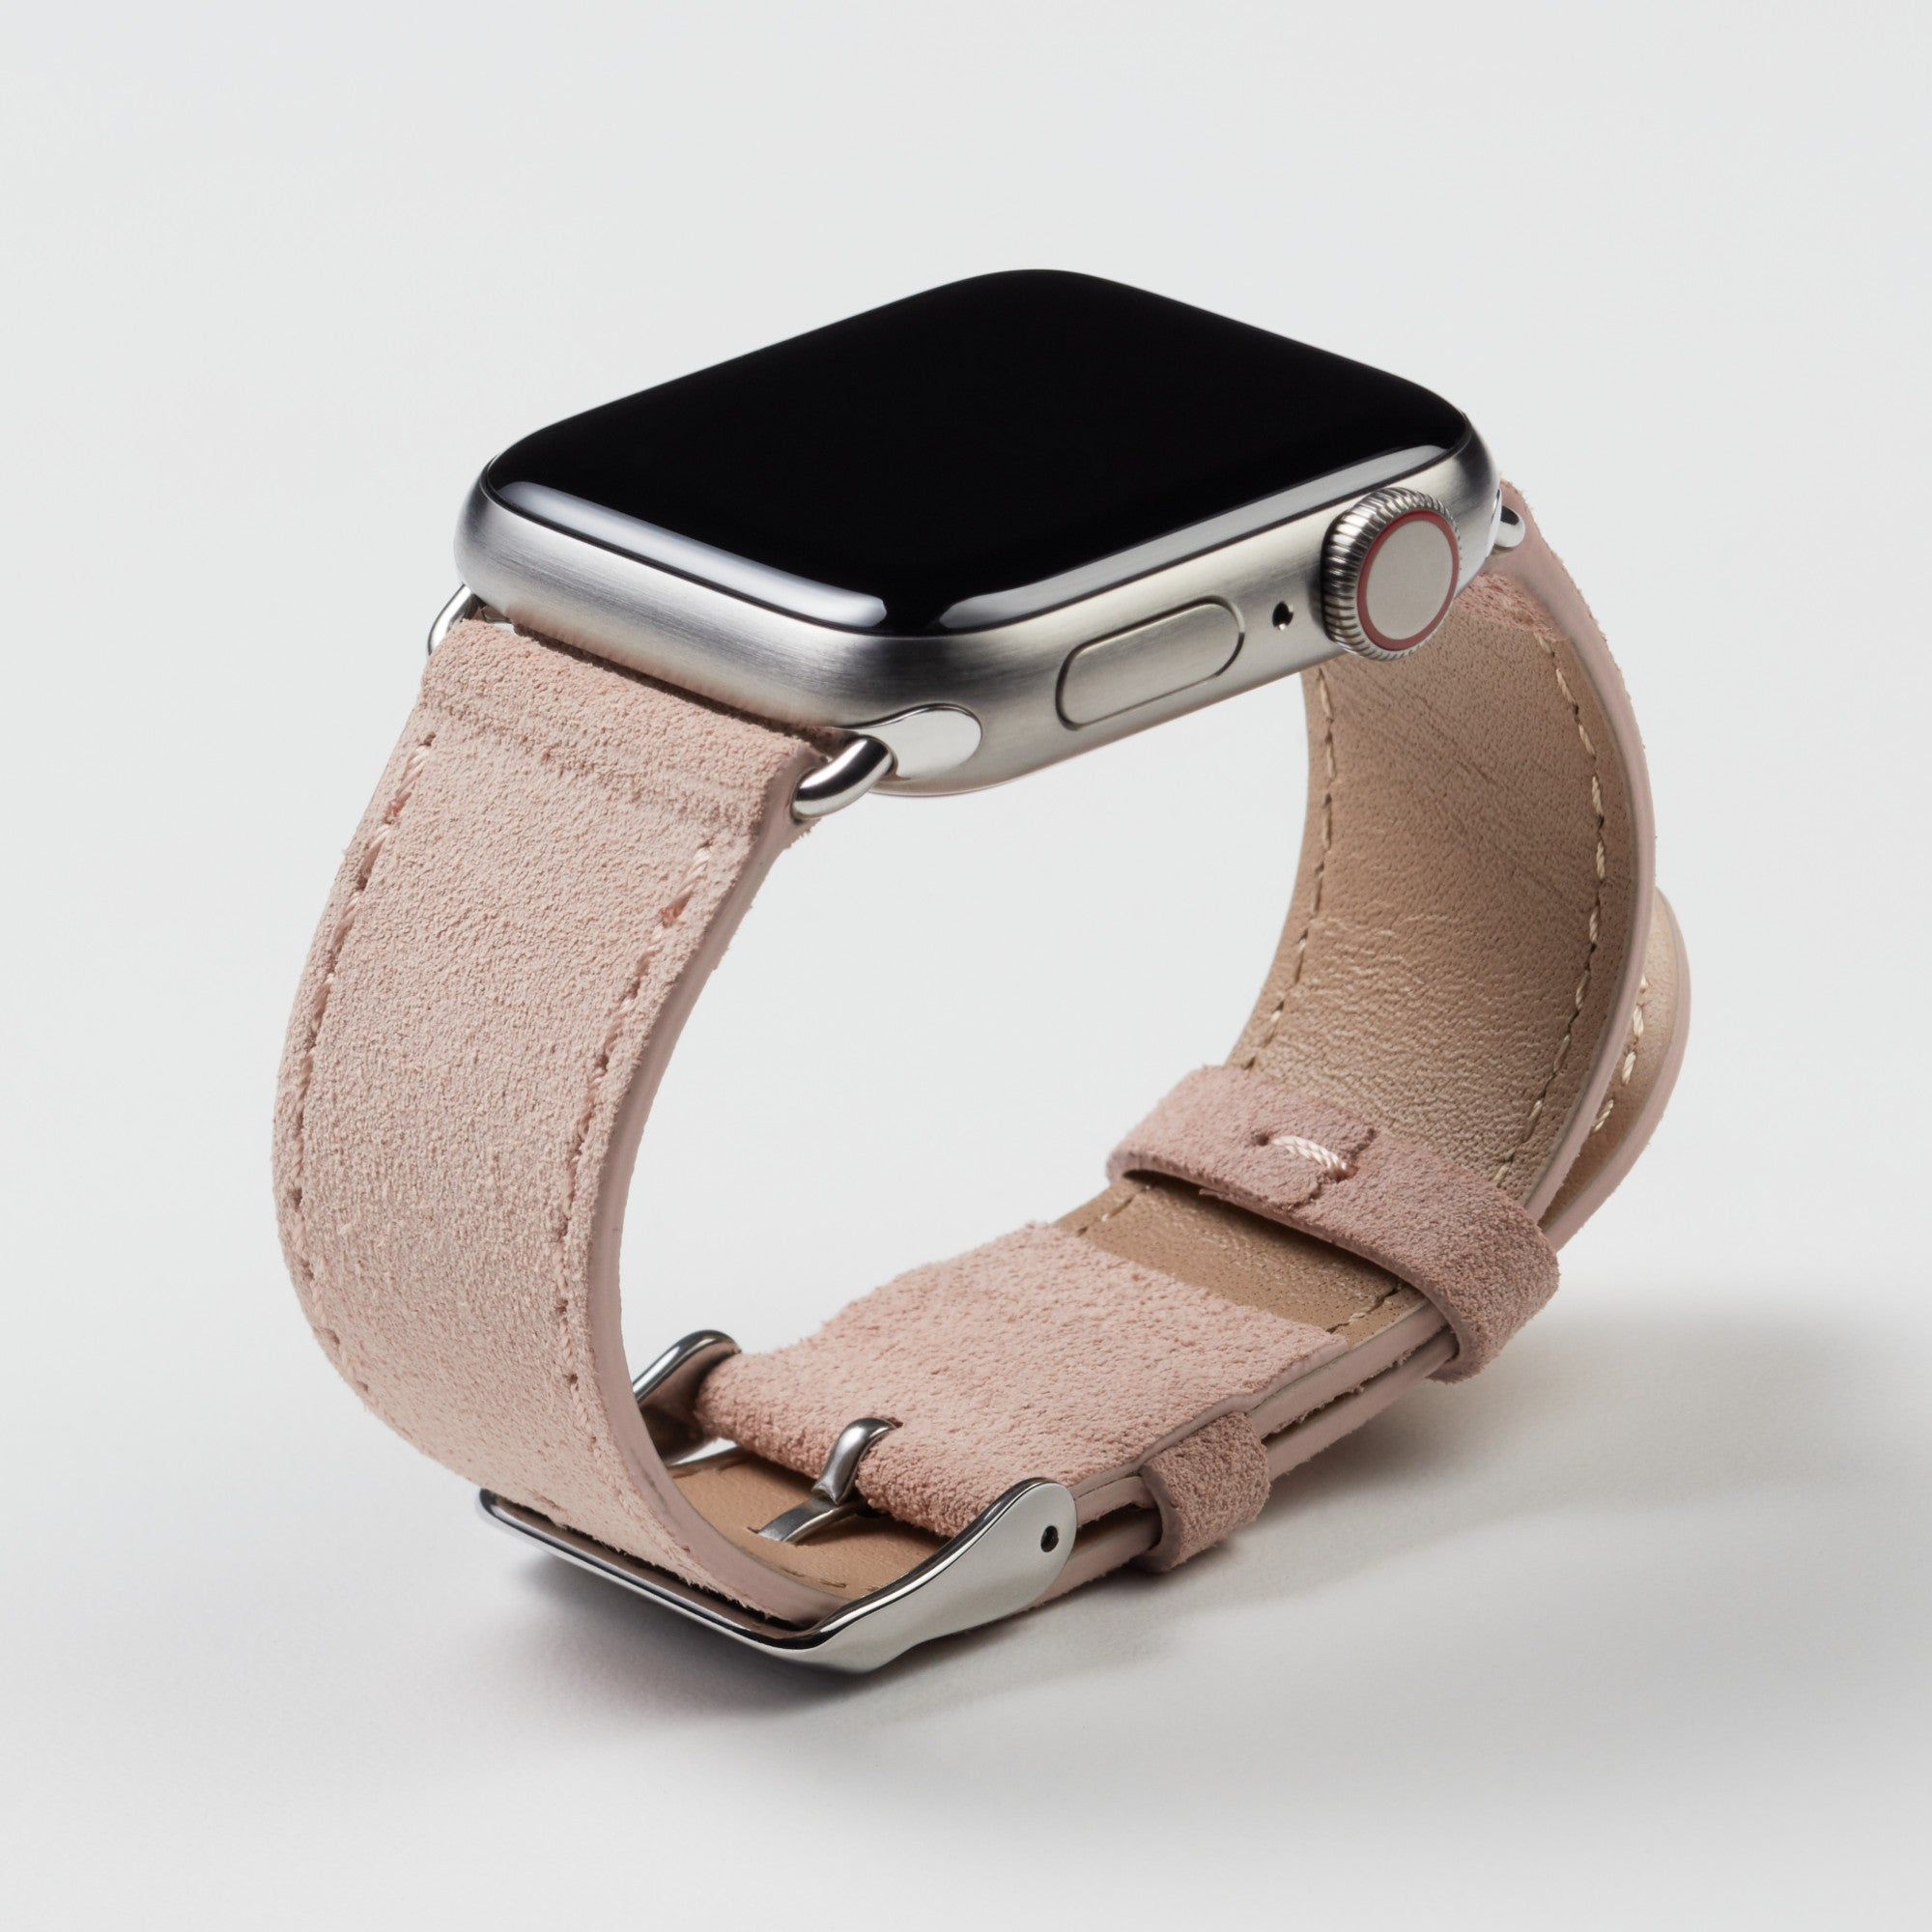 Pin and Buckle Apple Watch Bands - Velour - Suede Leather Apple Watch Band - Peach - Silver